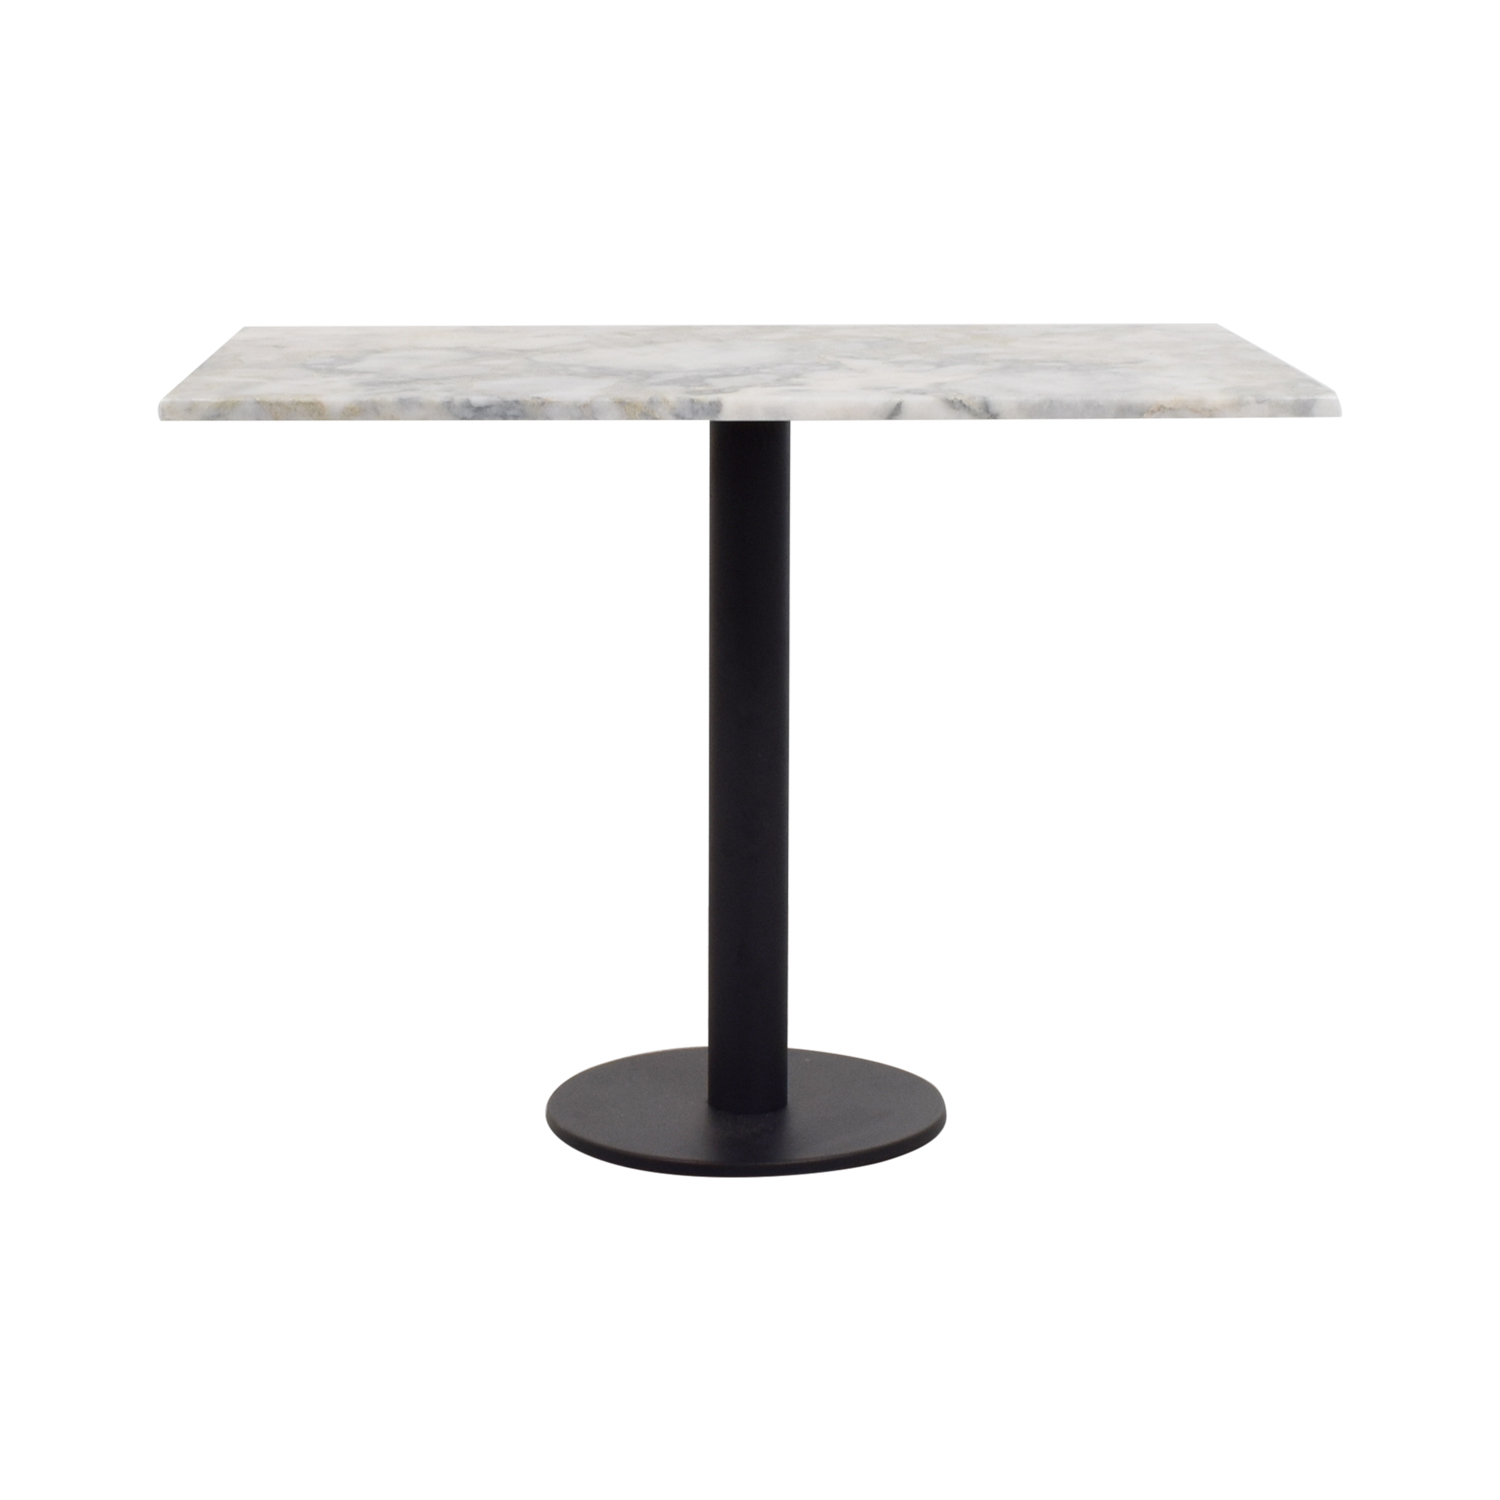 Lotus White and Gray Rectangular Marble Table / Sofas